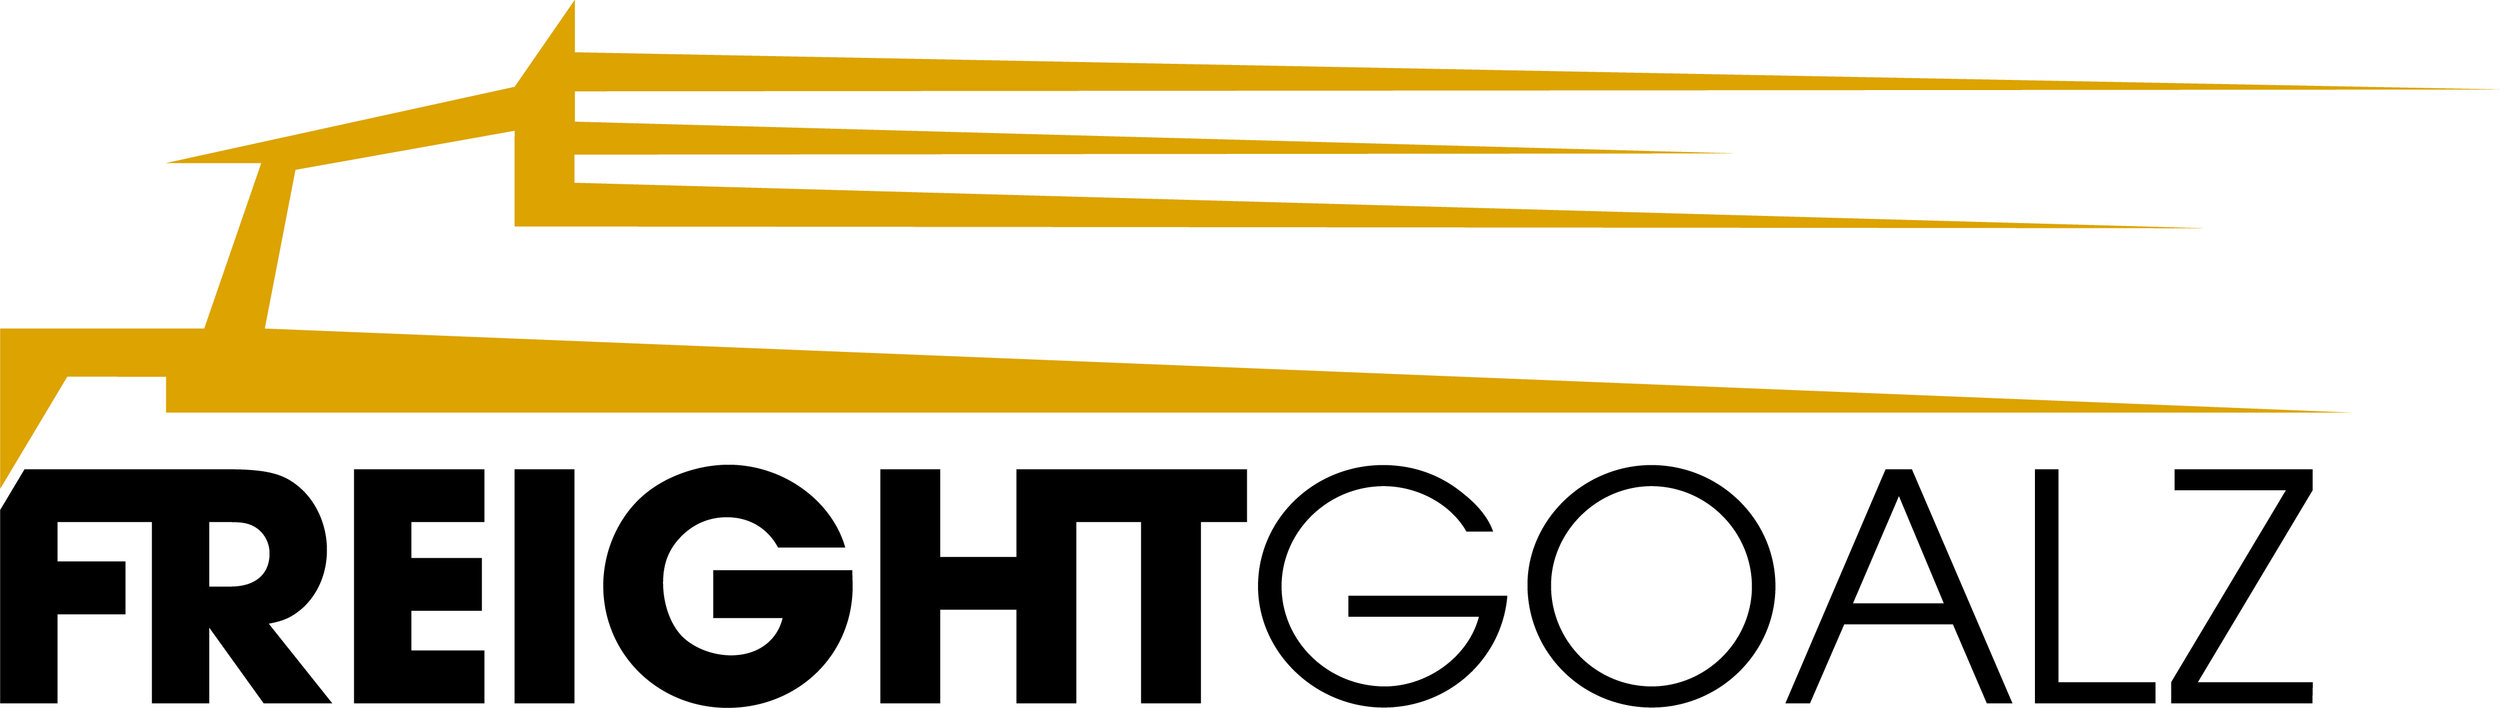 Freight Goalz Logo Vector File - Gold and Black.jpg